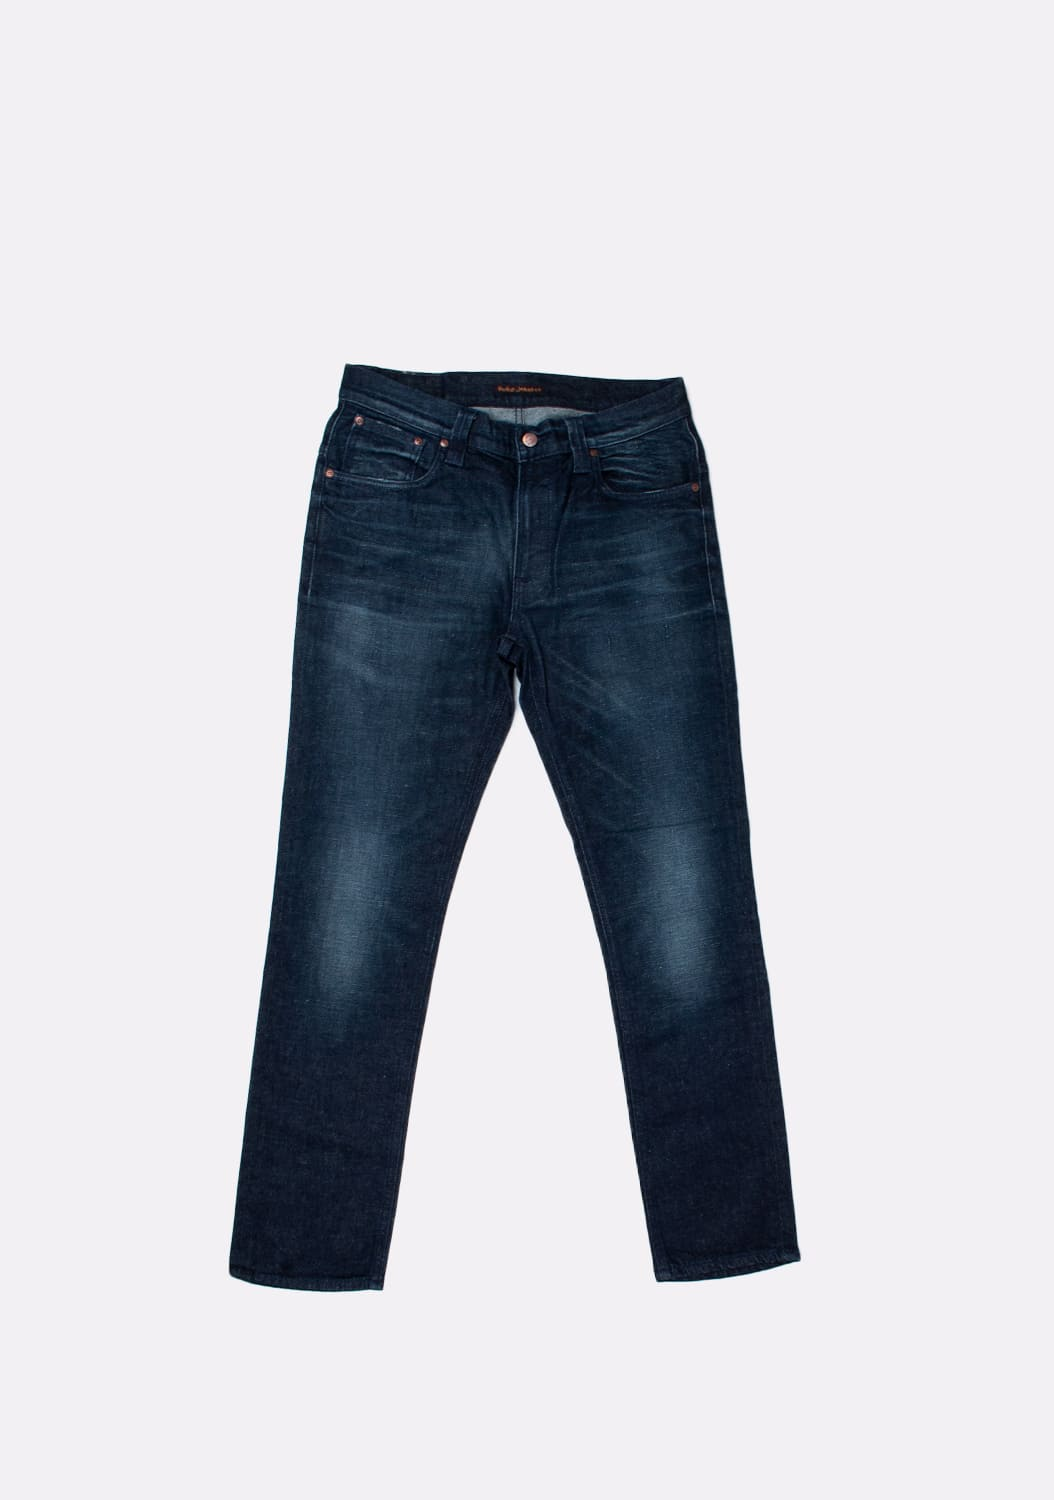 Nudie-Jeans-Tape-Ted-Org.-Nightcrawler-dzinsai-dydis-34-32 (2)